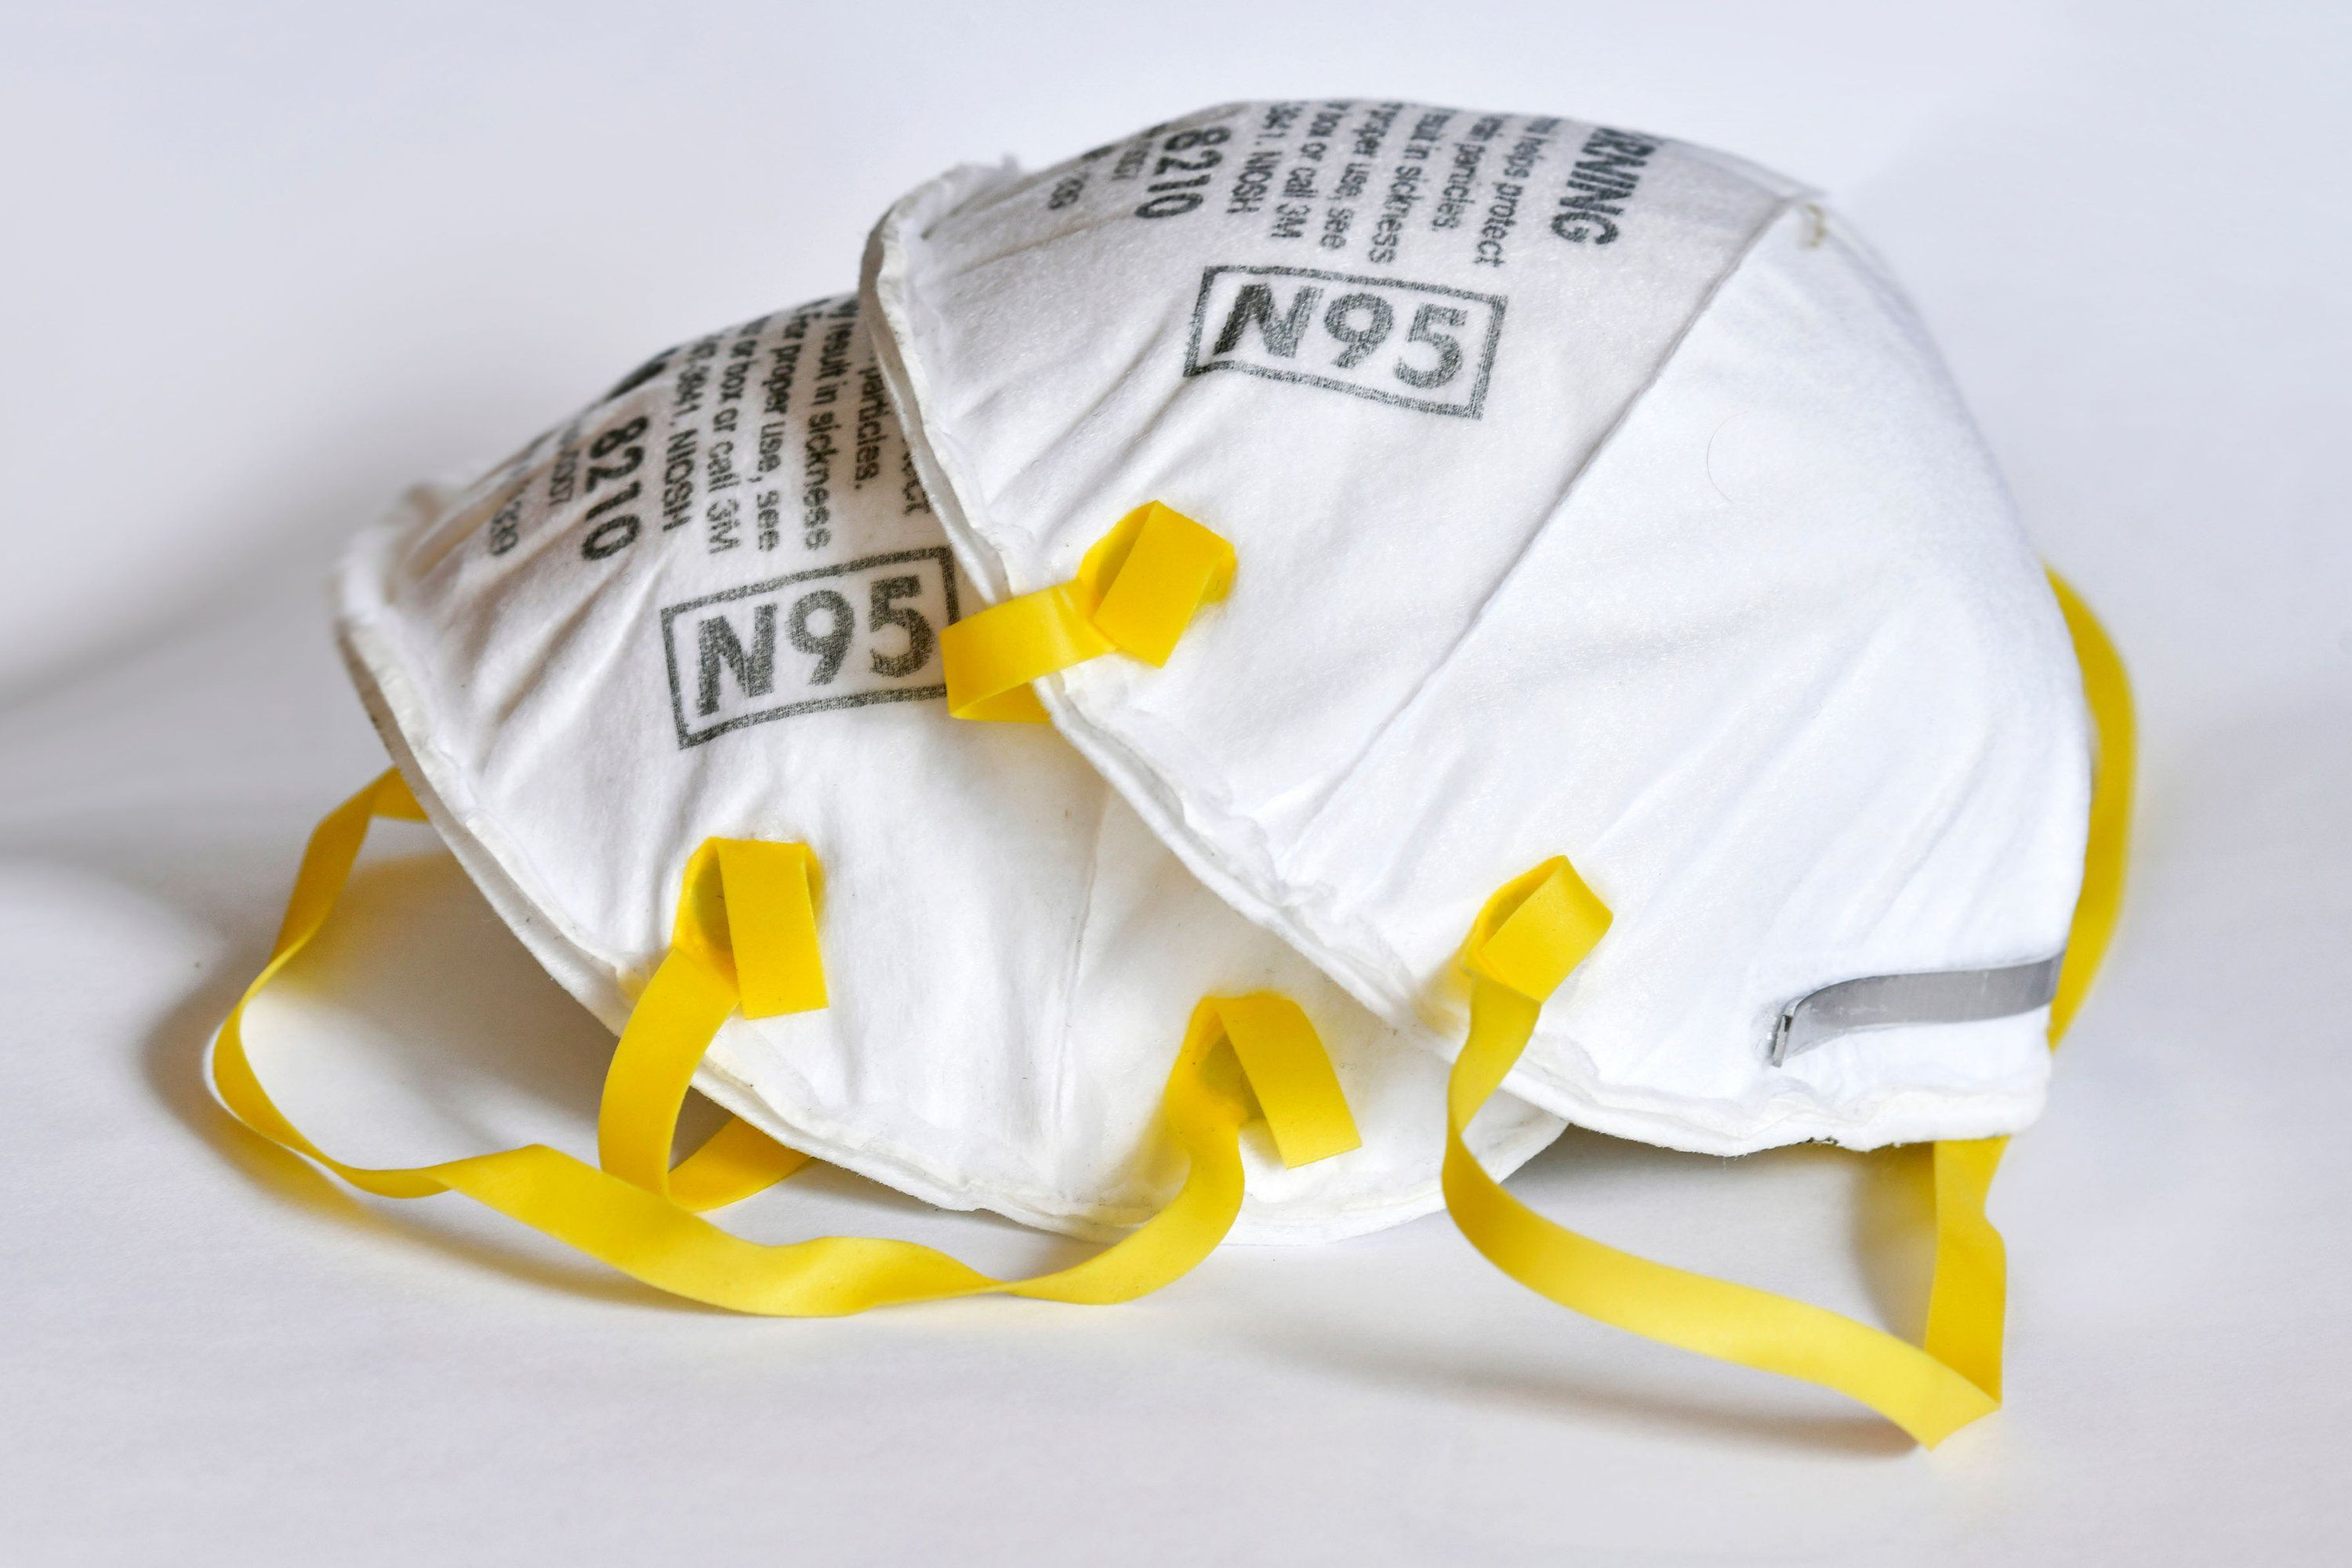 Testing whether uncertified N95 masks are effective | MIT News |  Massachusetts Institute of Technology